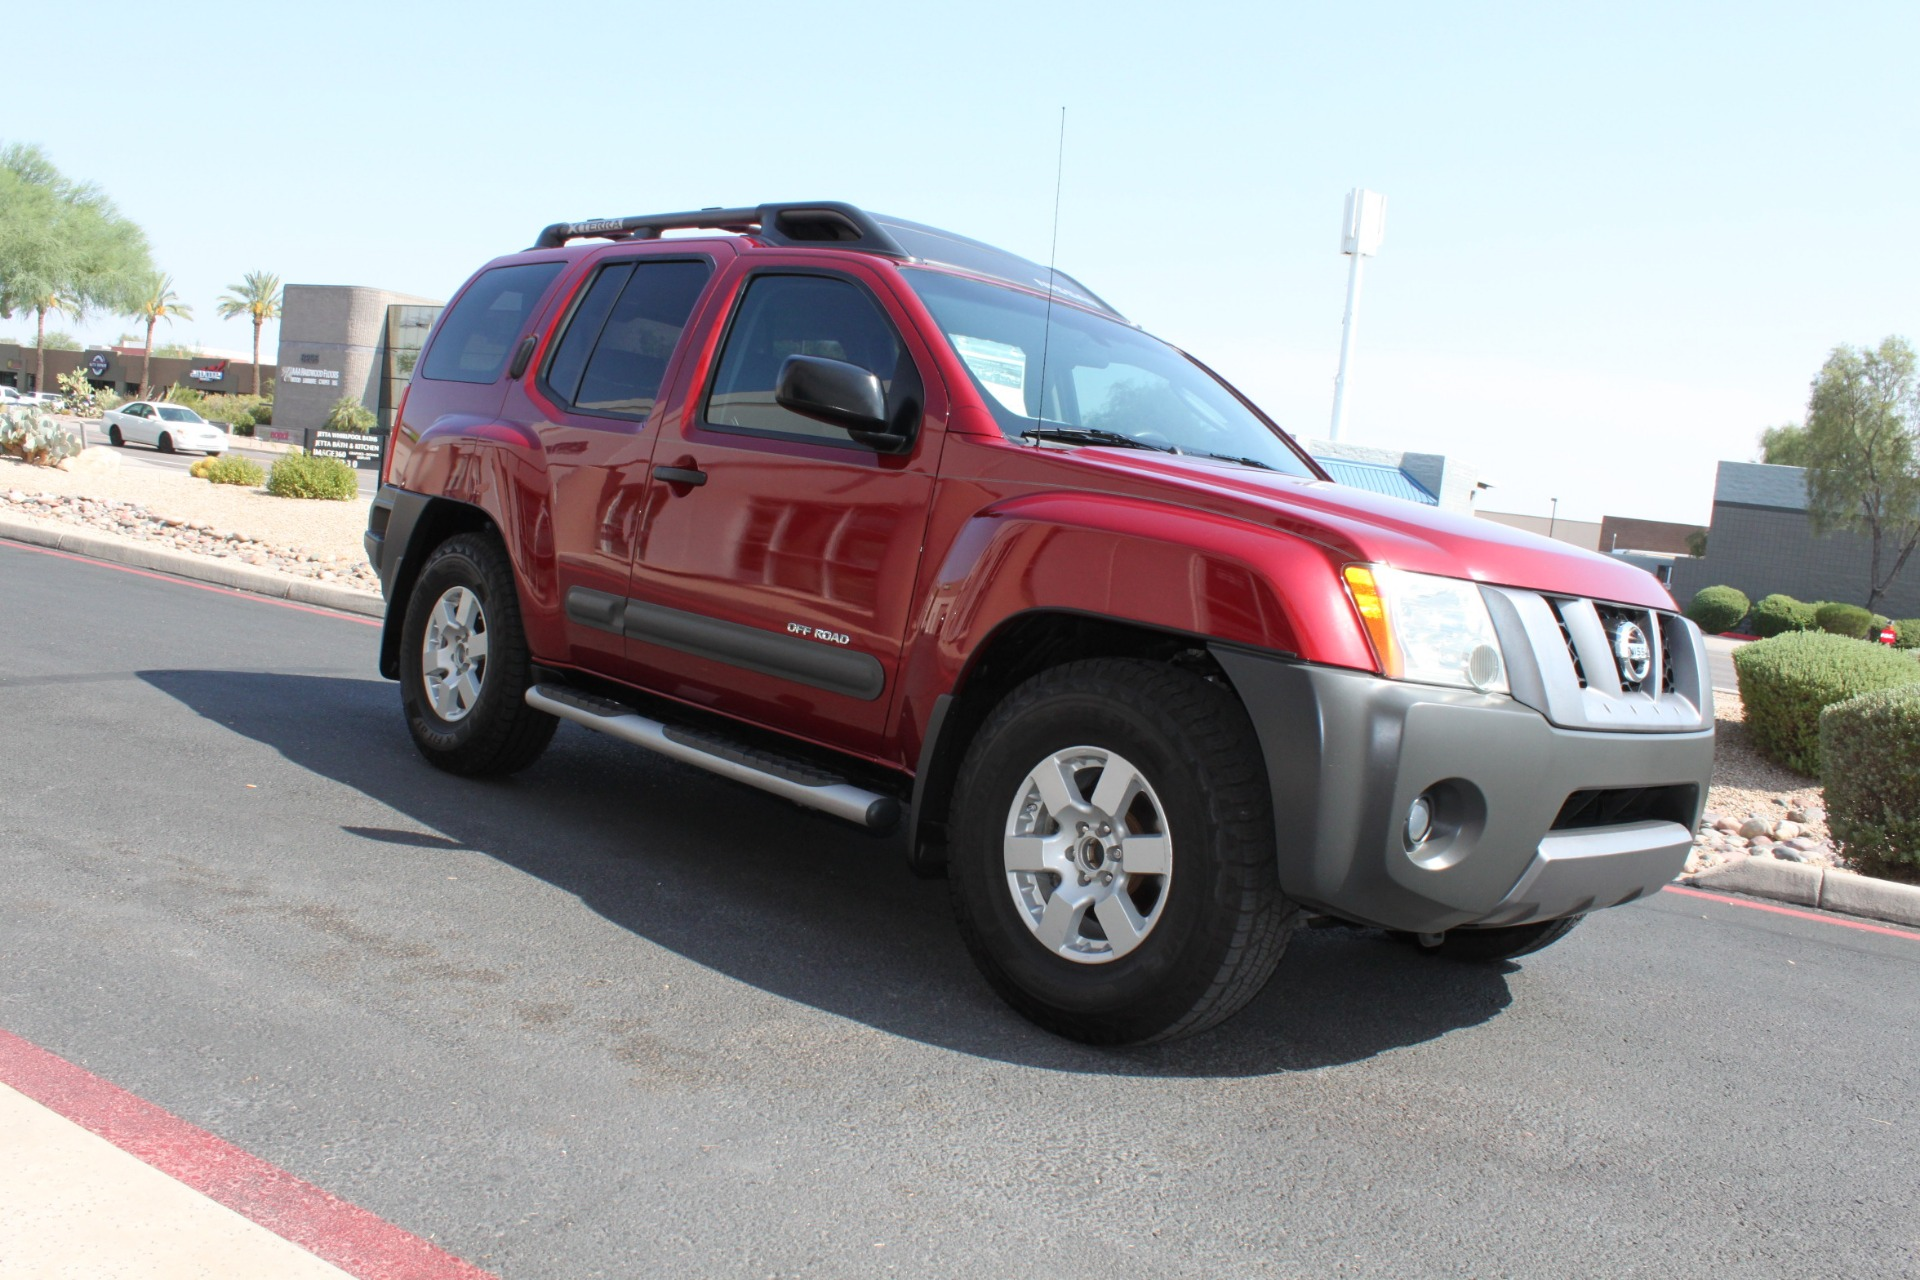 Used-2006-Nissan-Xterra-Off-Road-Chevrolet